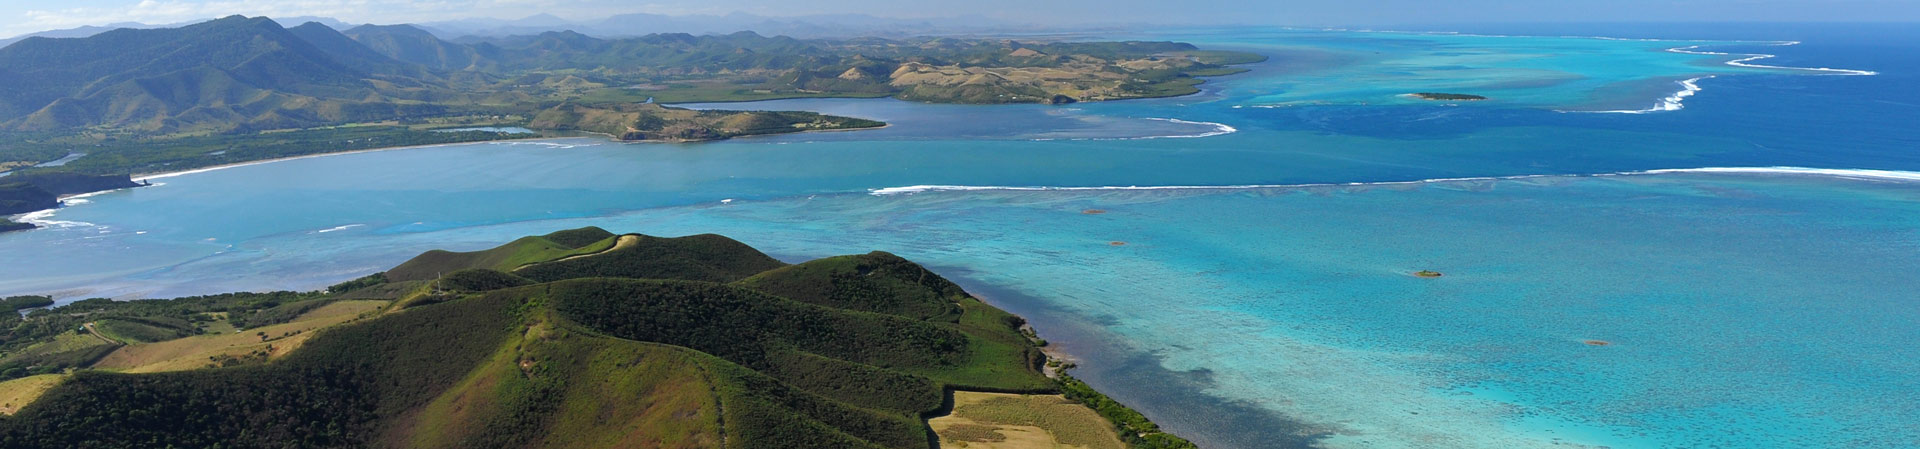 Bourail bay in New Caledonia